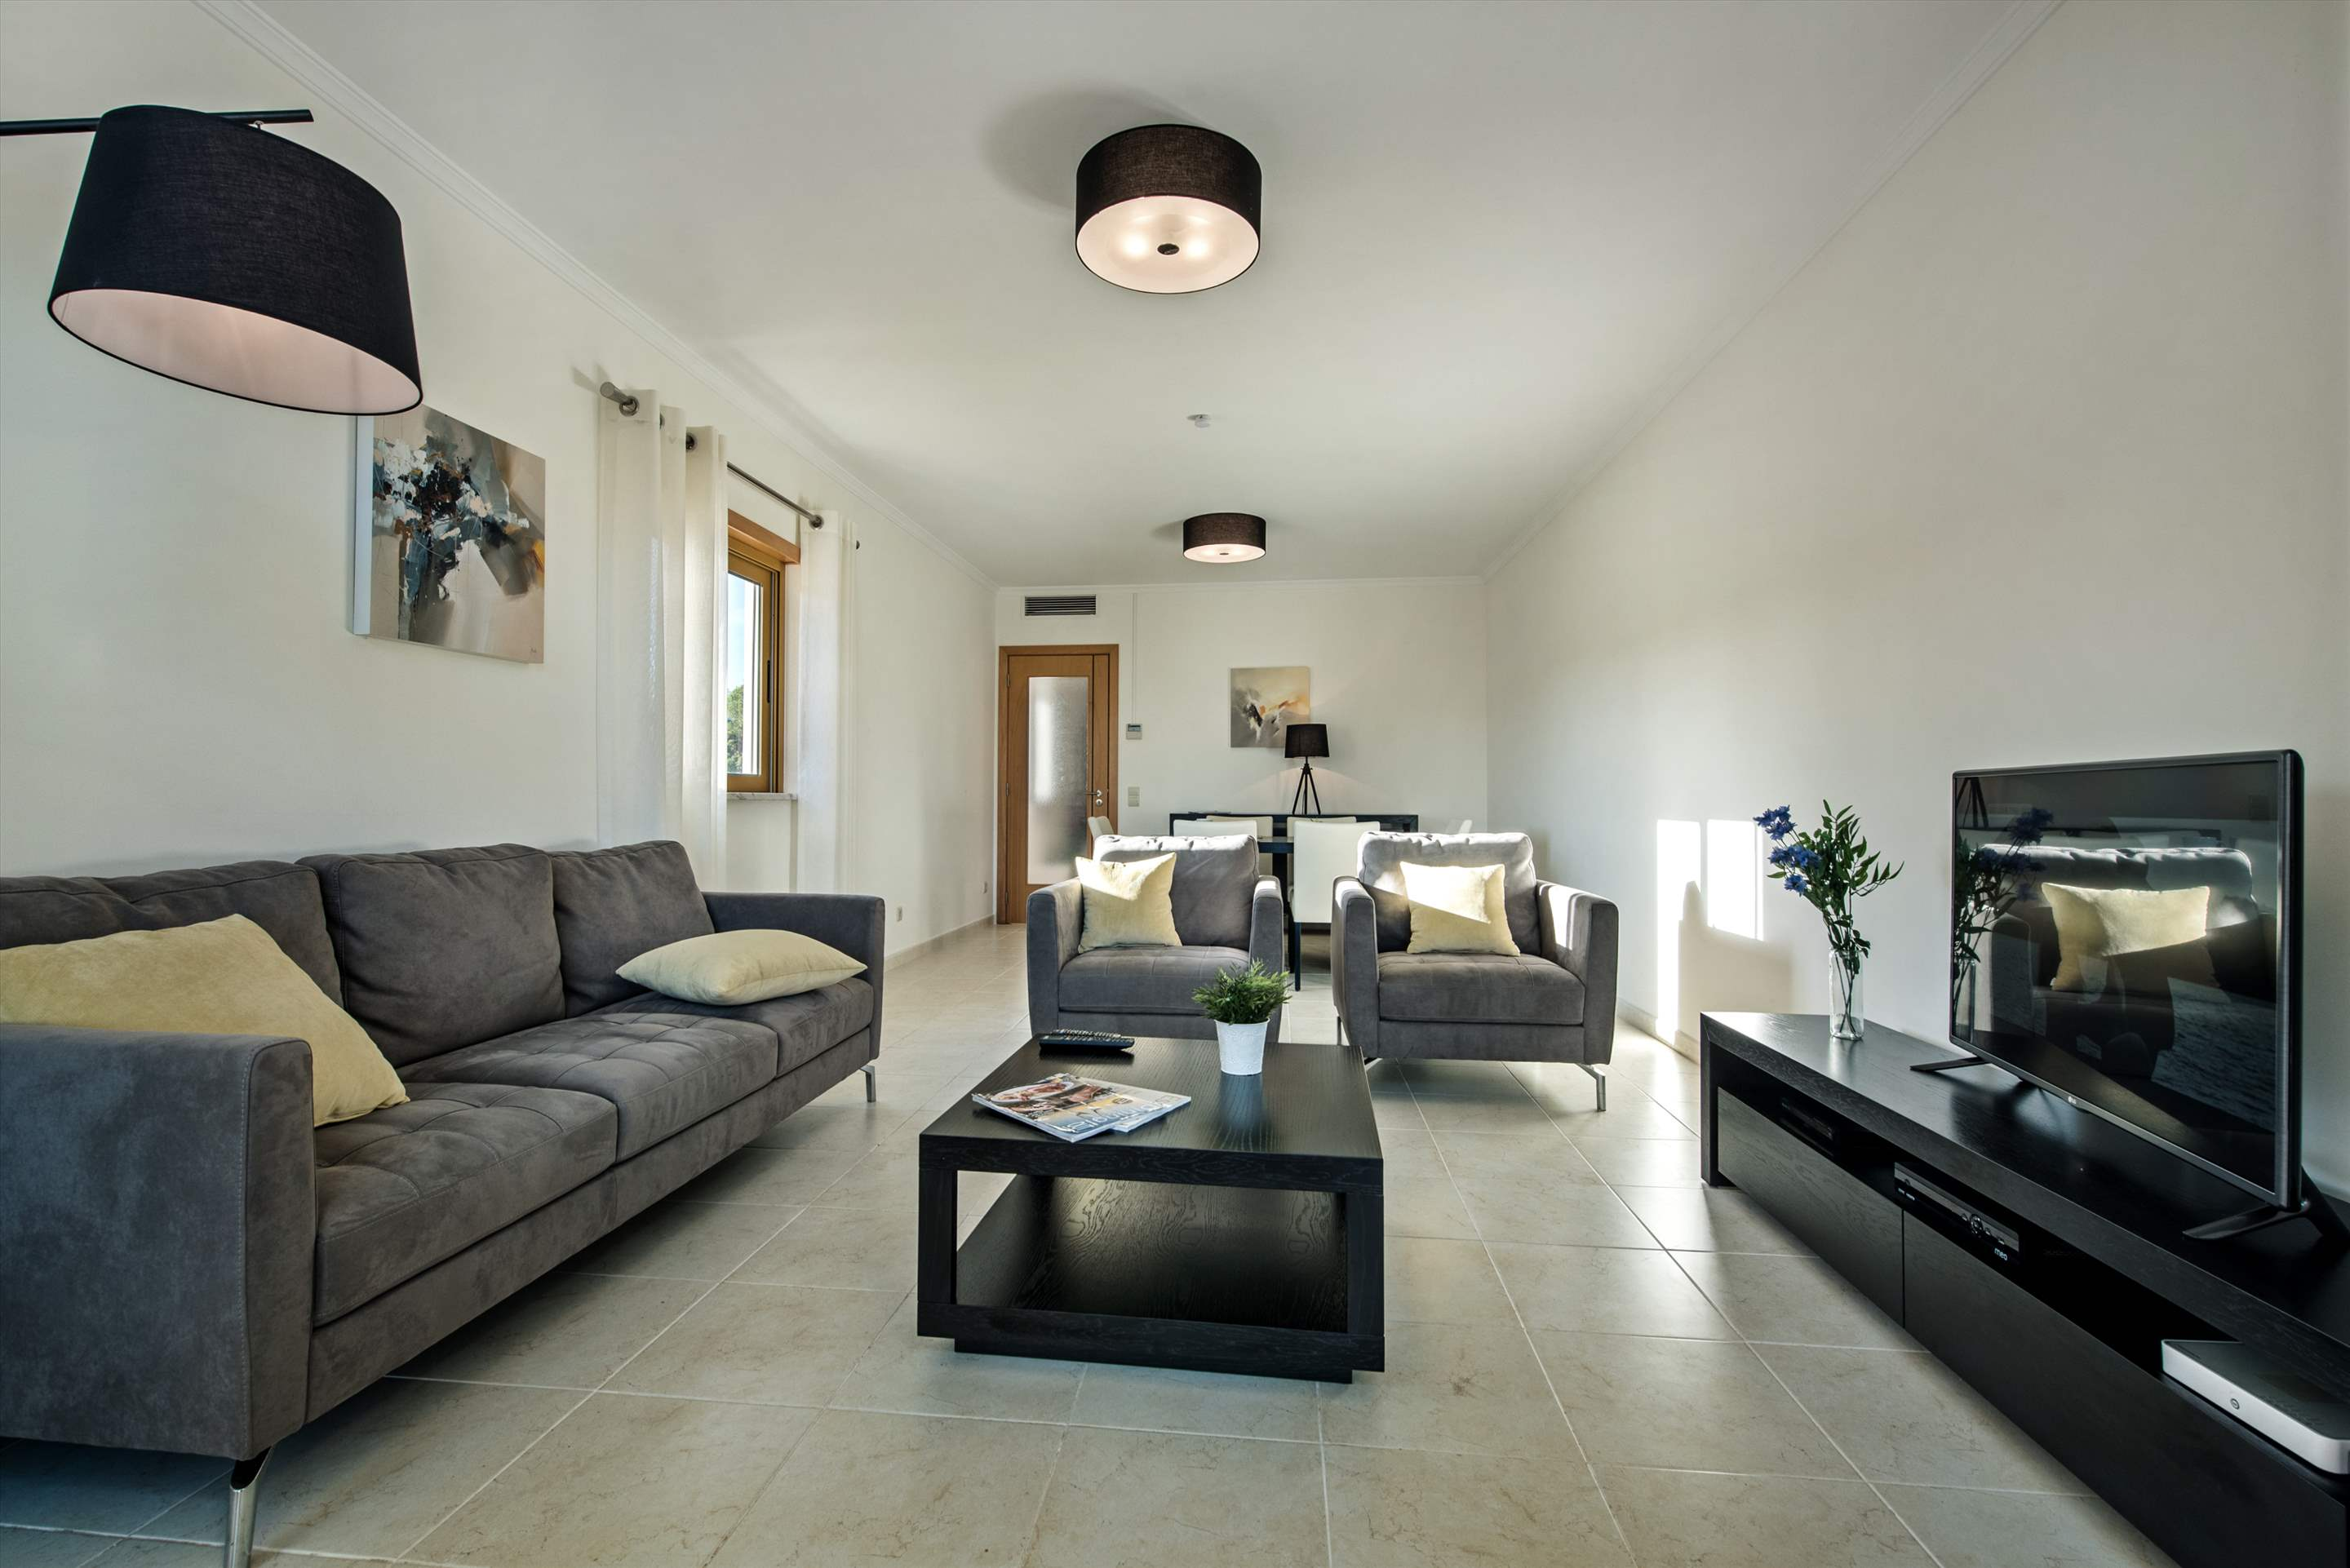 Townhouse Rosal 'D', 2 bedroom villa in Gale, Vale da Parra and Guia, Algarve Photo #11